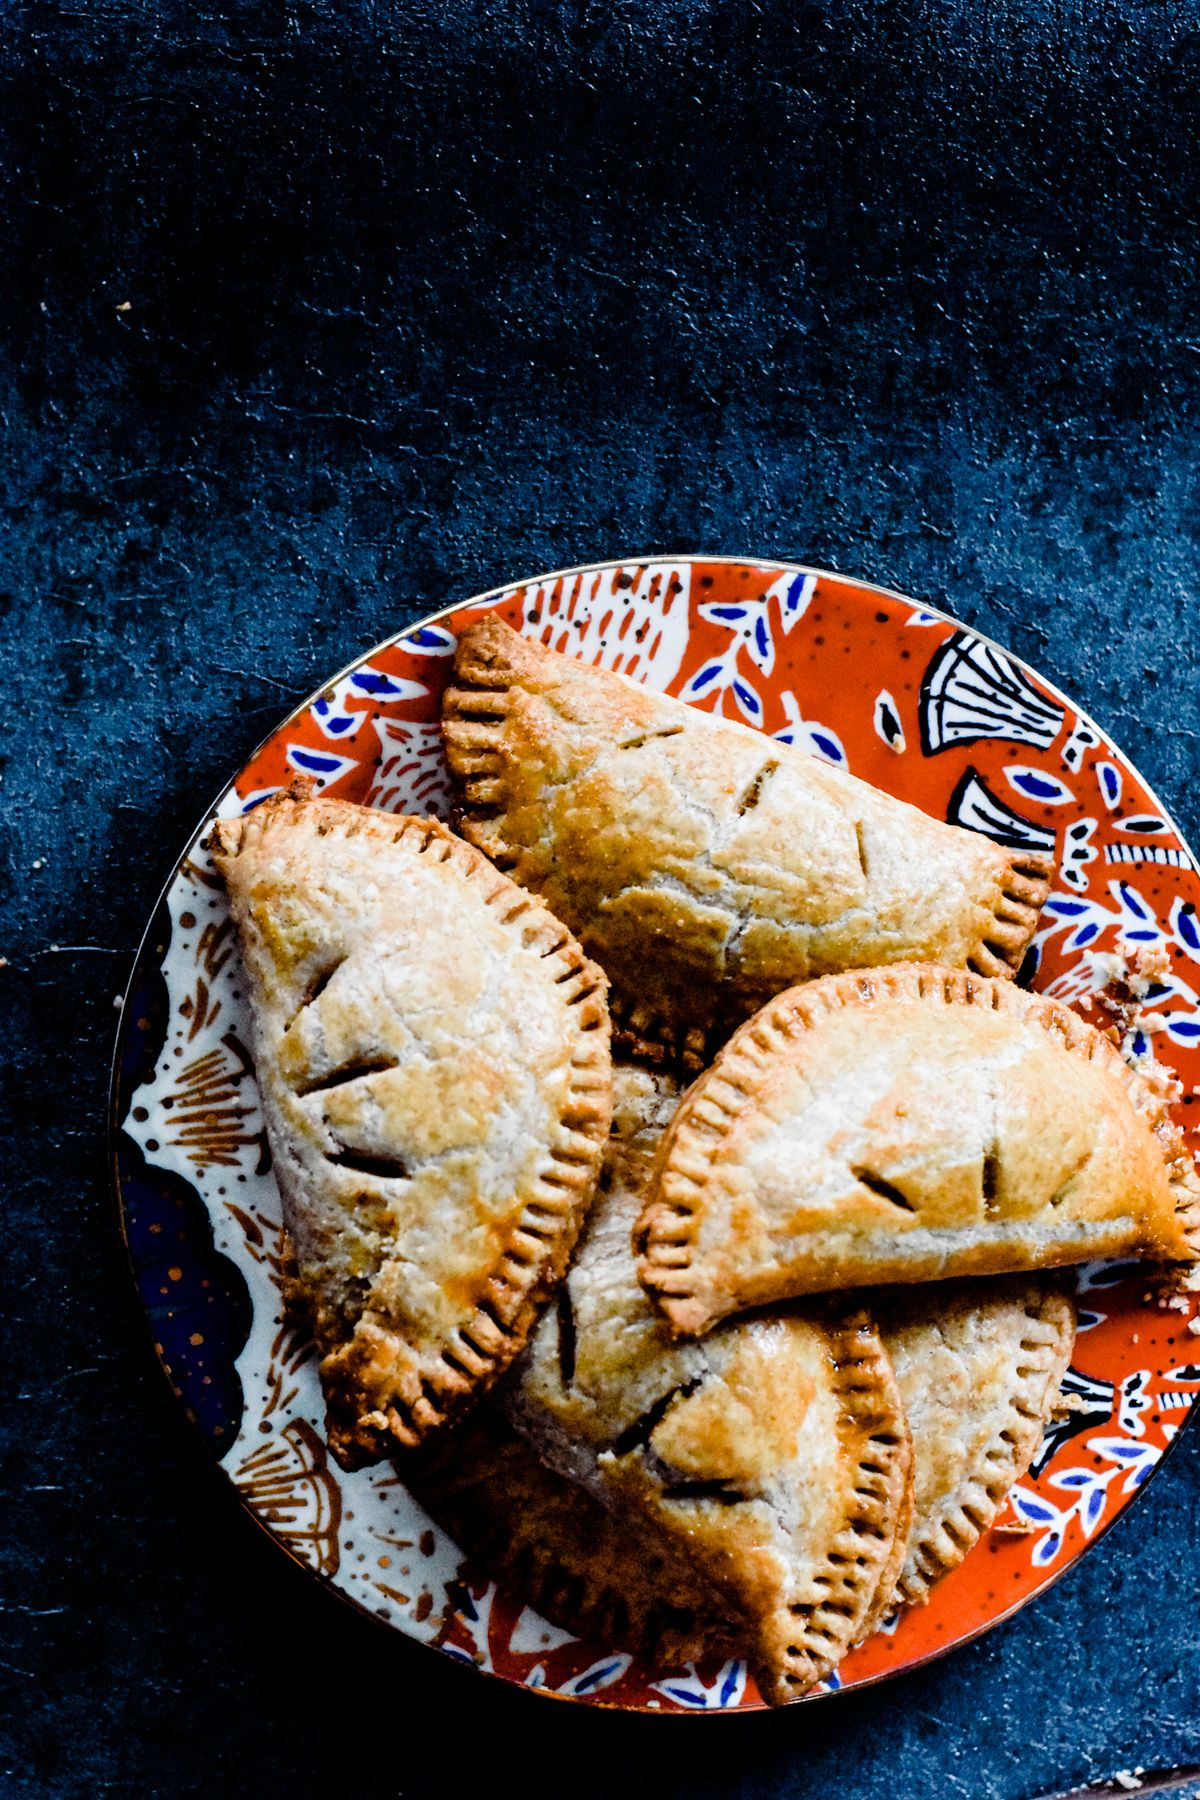 Pumpkin Pasties Pumpkin Pasties - These Homemade Pumpkin Pasties are inspired by the Harry Potter books! They're made with crisp, flaky, buttery, homemade pie crust and filled with a scrumptious maple pumpkin filling! SO delicious. |